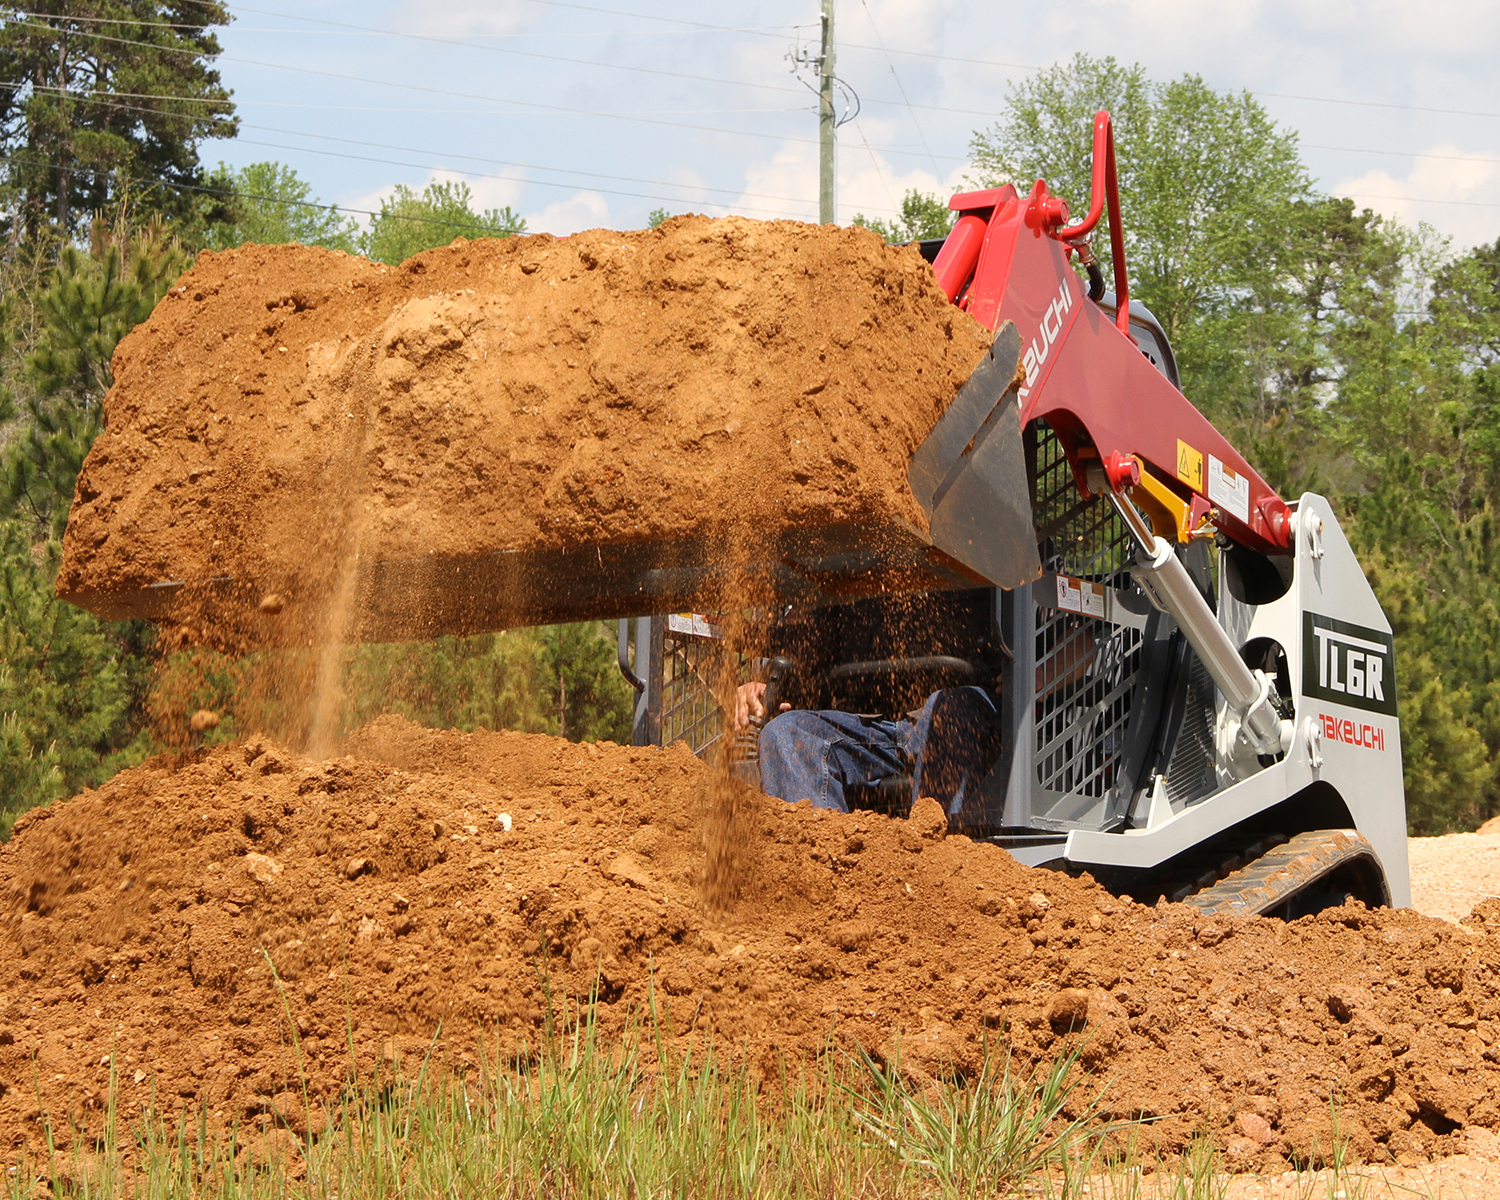 Takeuchi heavy duty equipment